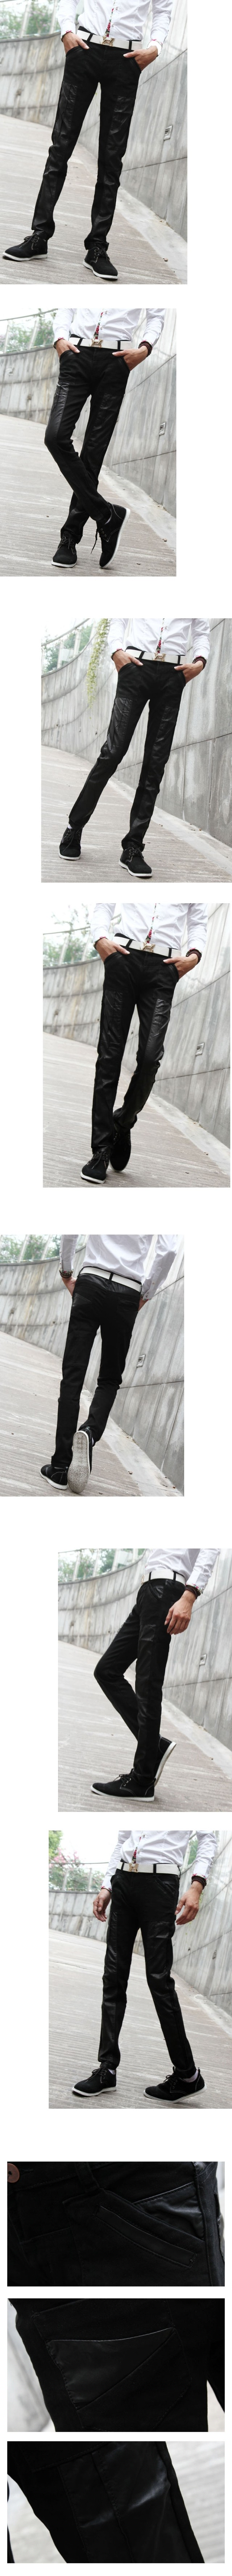 Entong Leather Slim Casual Matchende Solid Komfortabel Mænd Pants